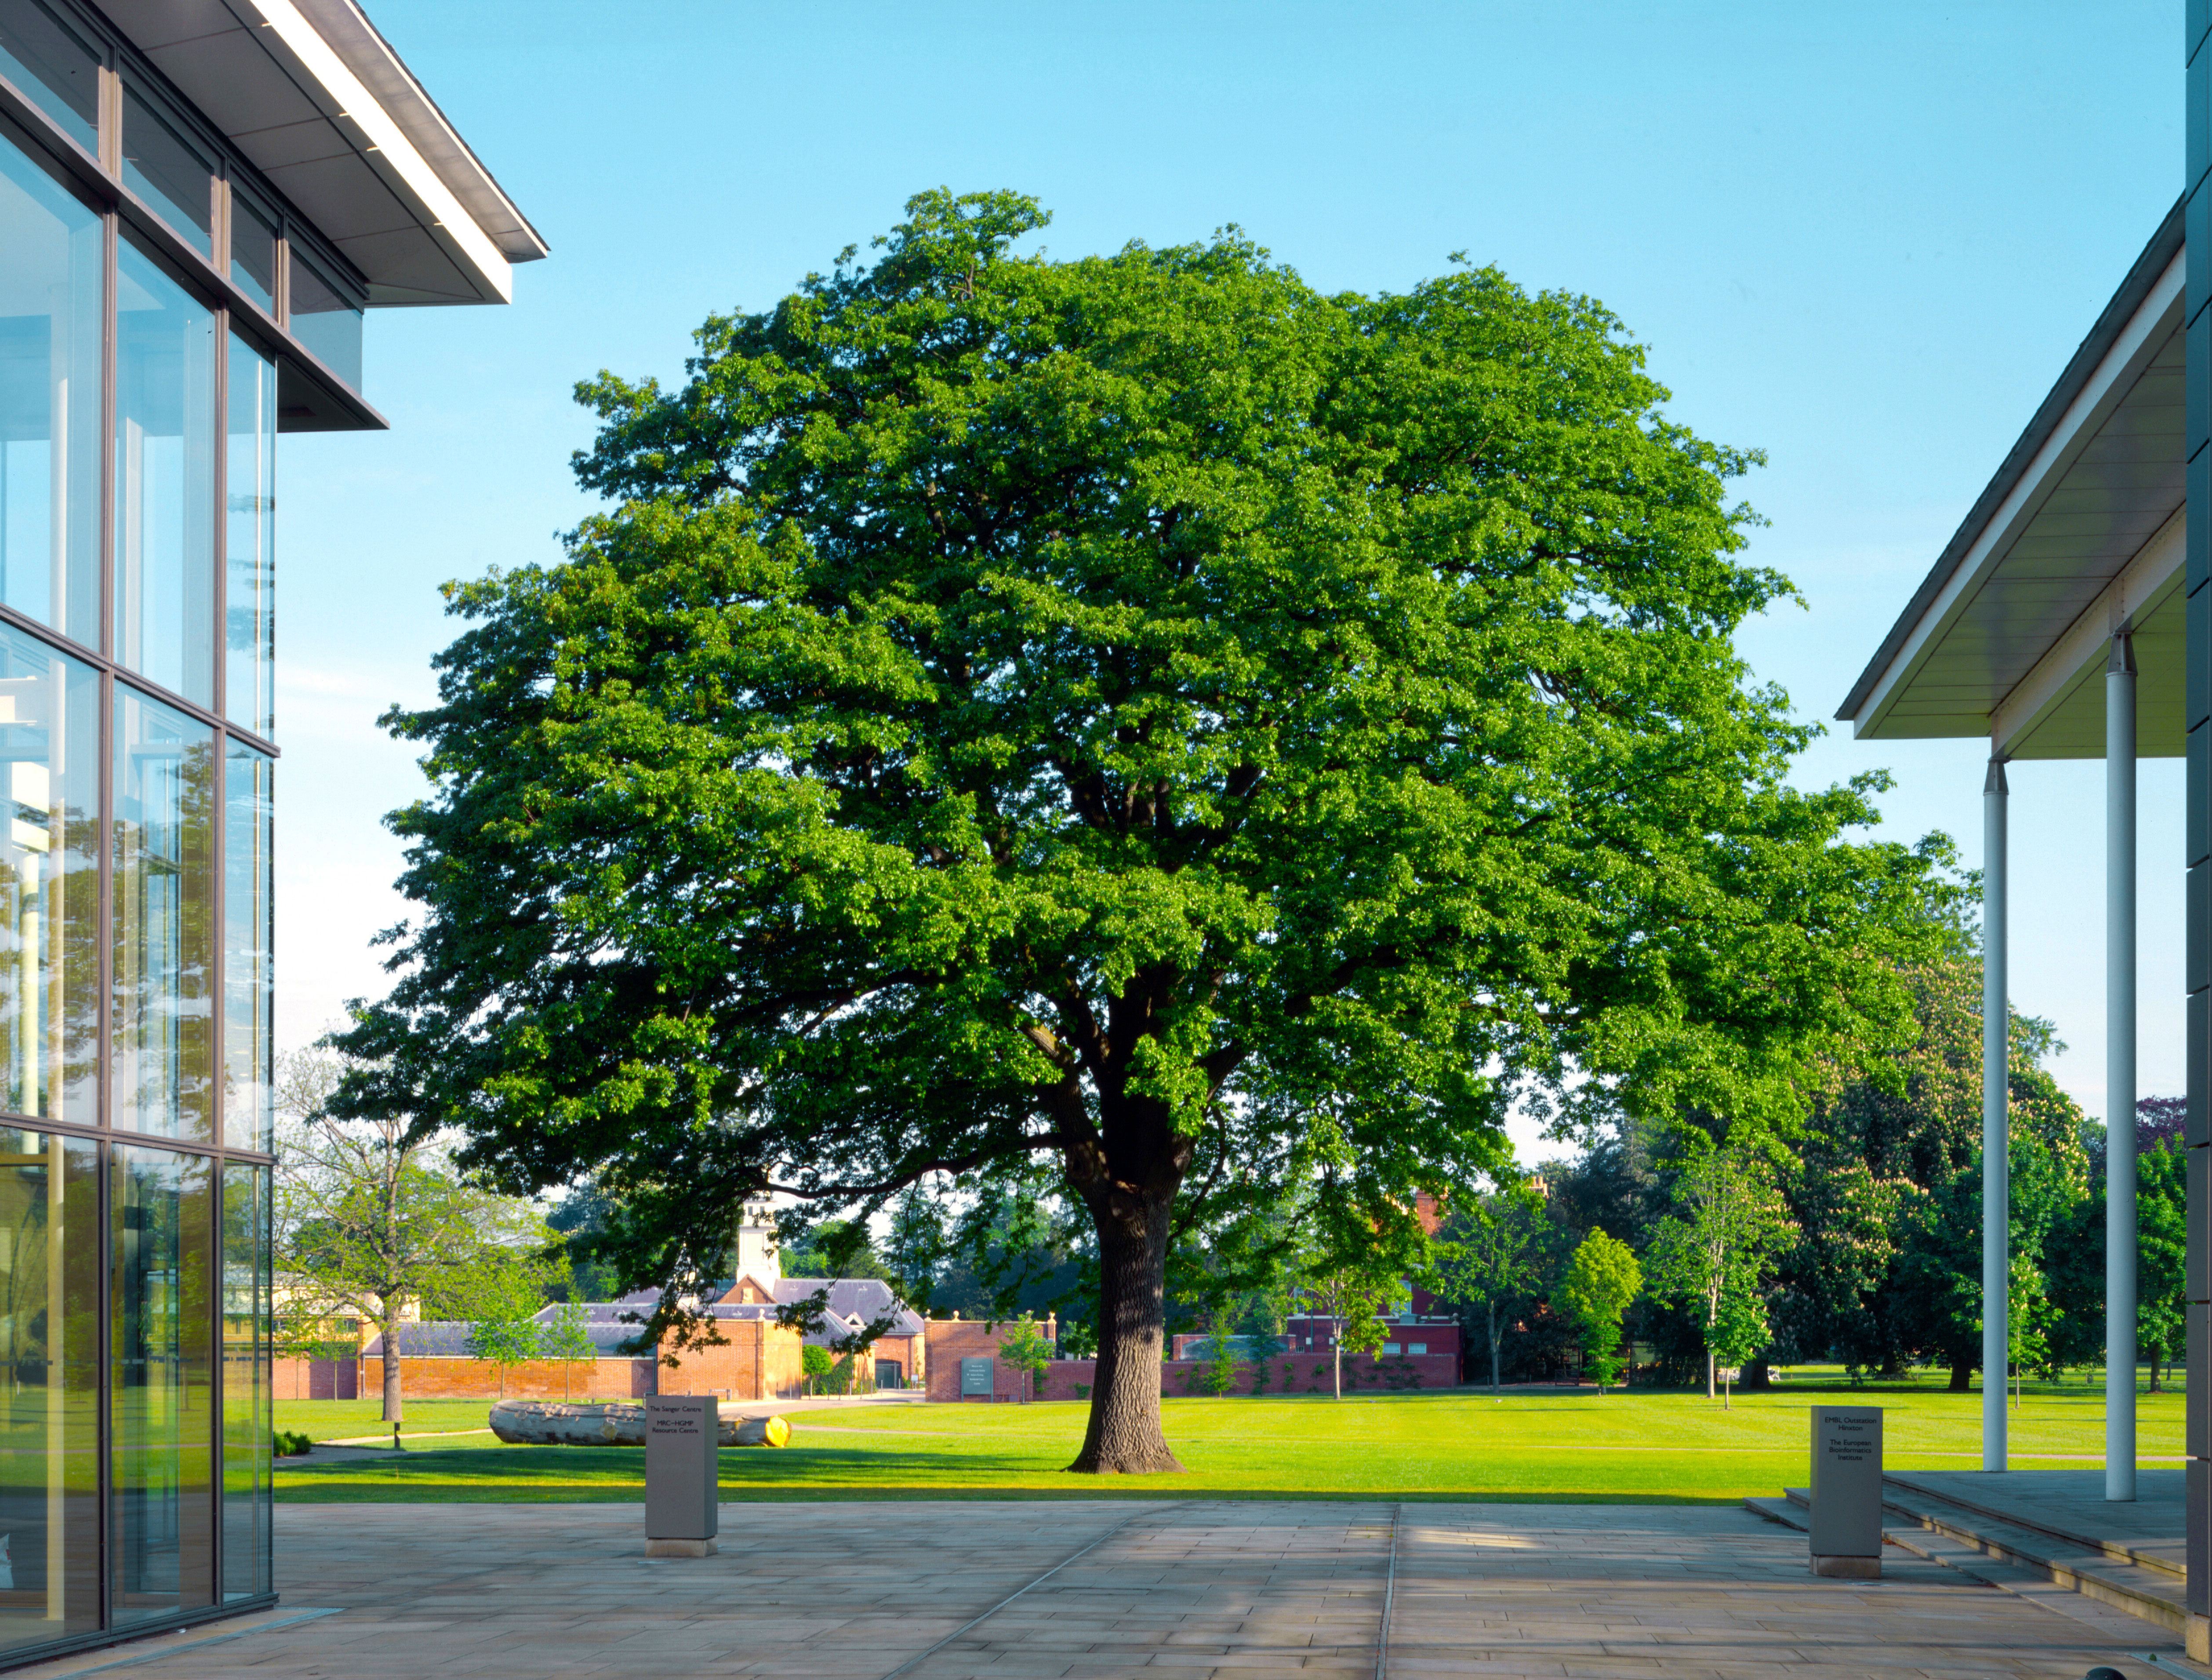 One of the original trees on the campus